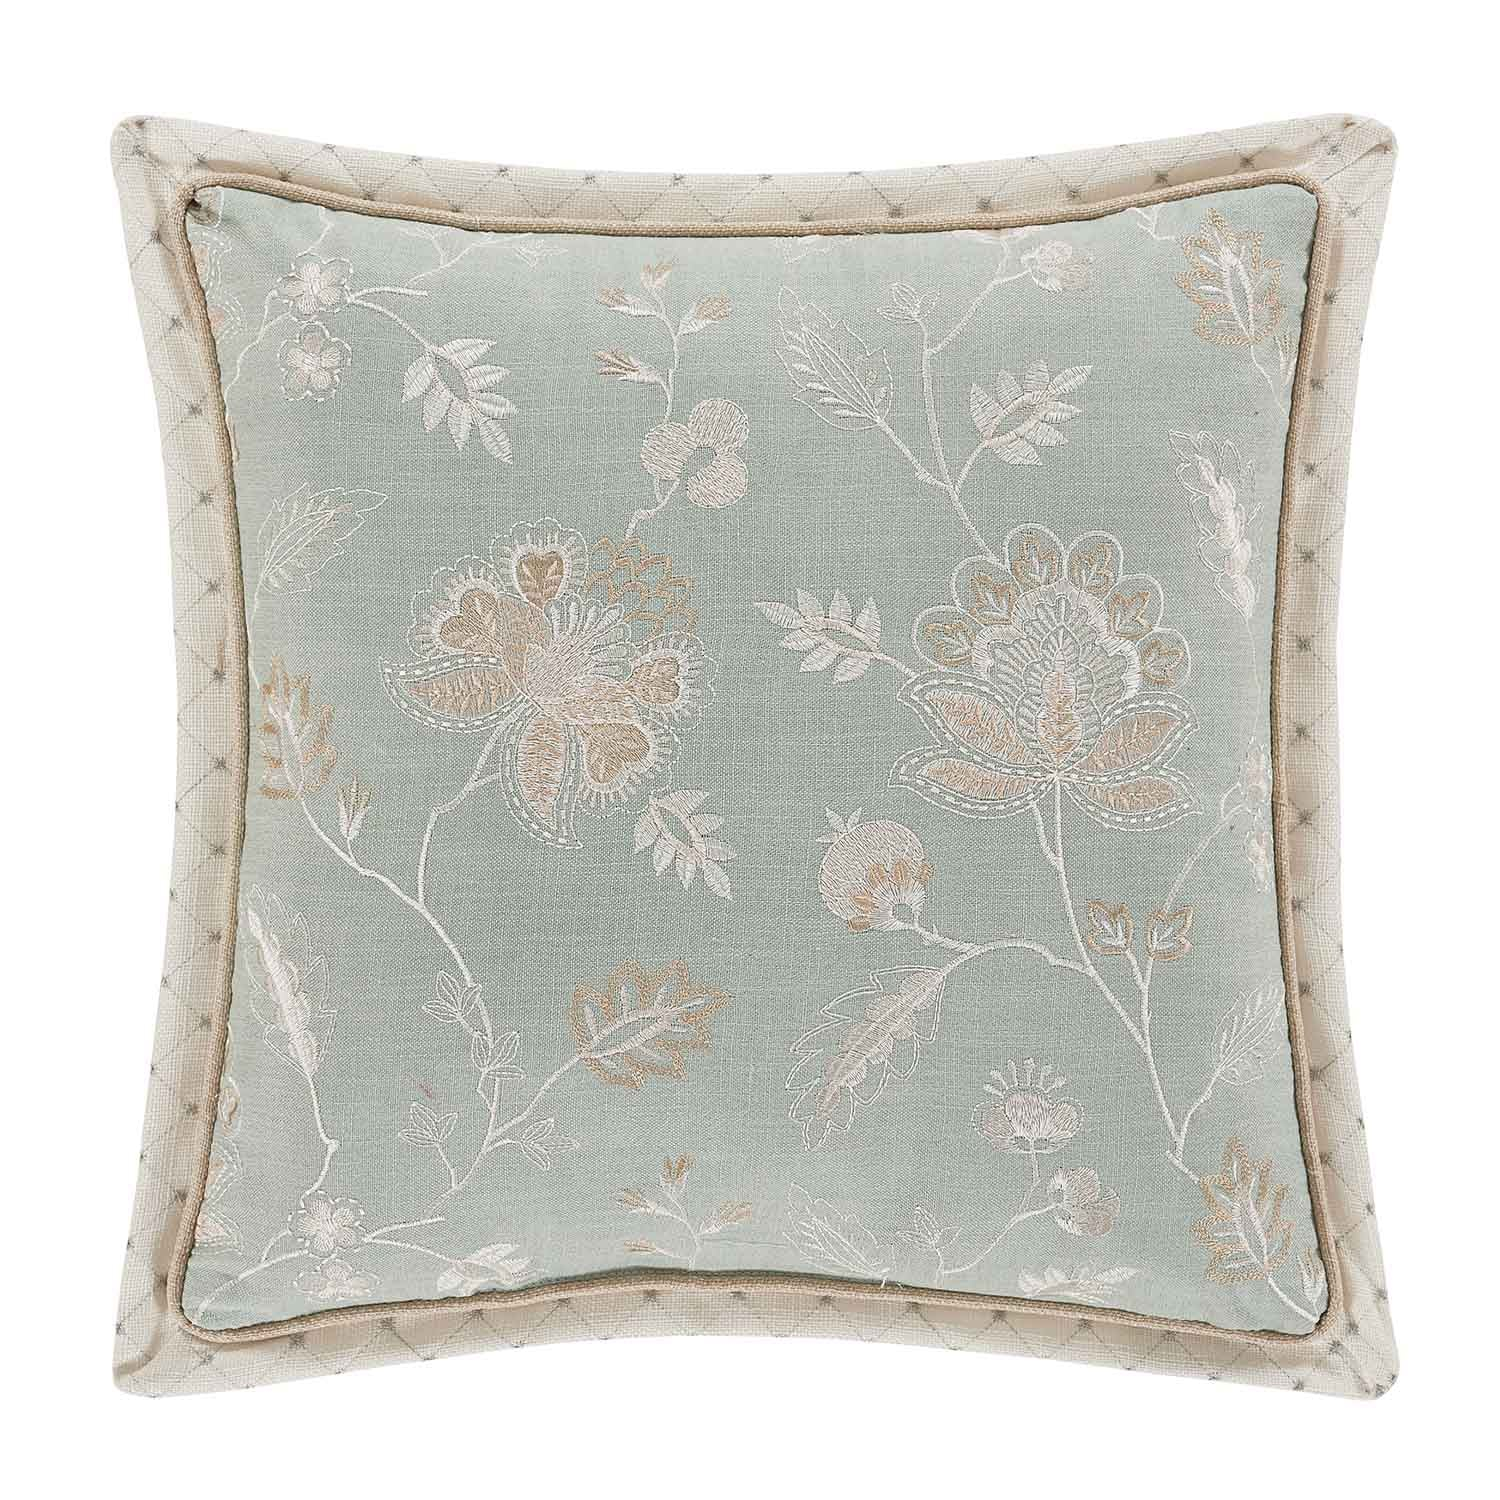 "Garden View SPA Square Decorative Throw Pillow 18""W x 18""L"" [Luxury comforter Sets] [by Latest Bedding]"